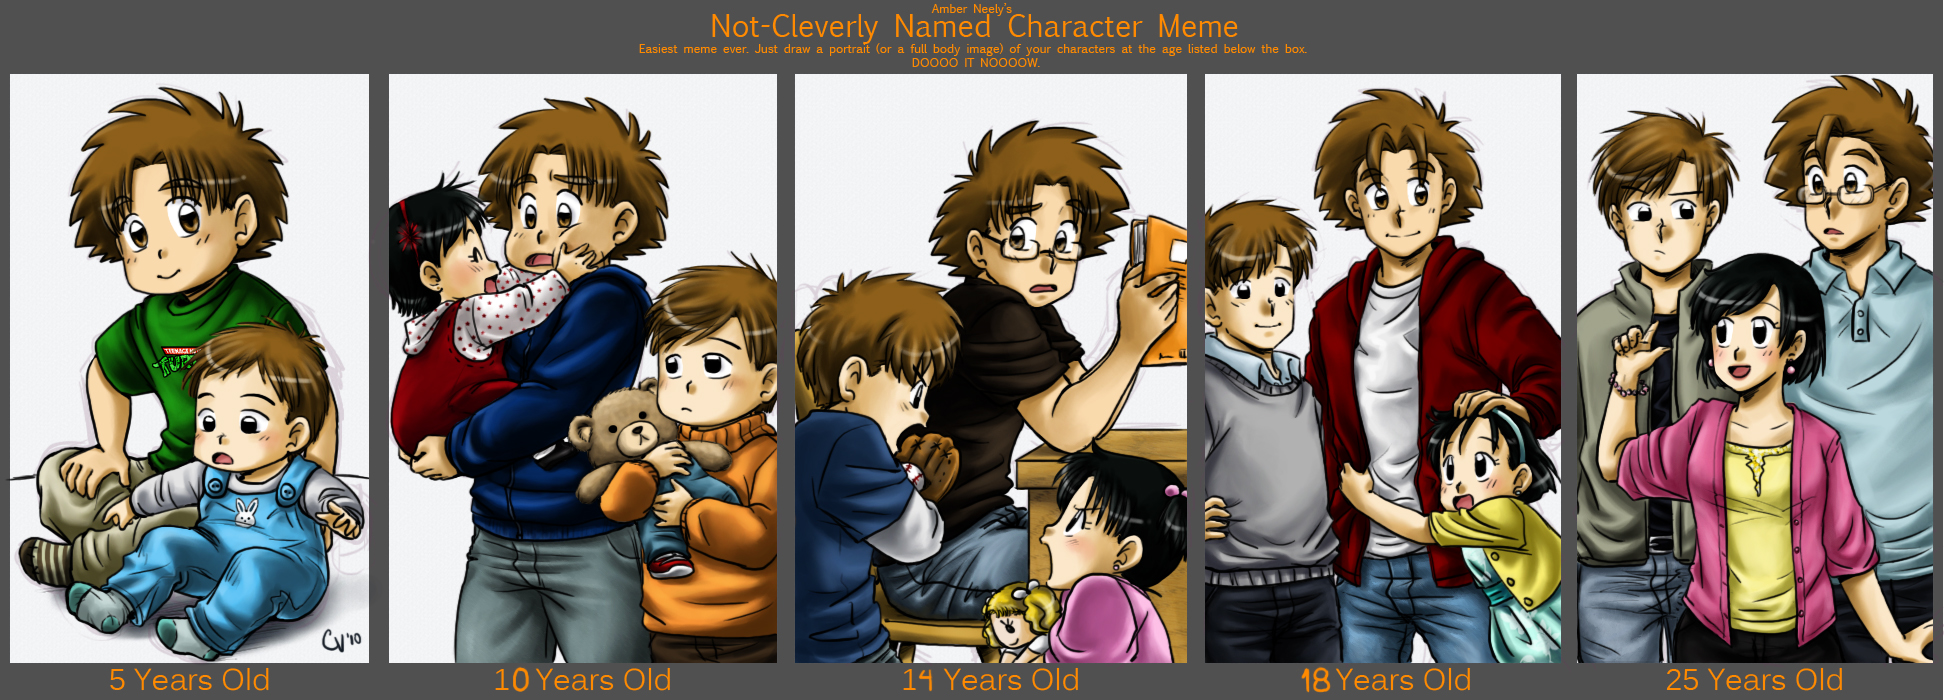 7 Year Old Anime Characters : Character age meme william by camlost on deviantart